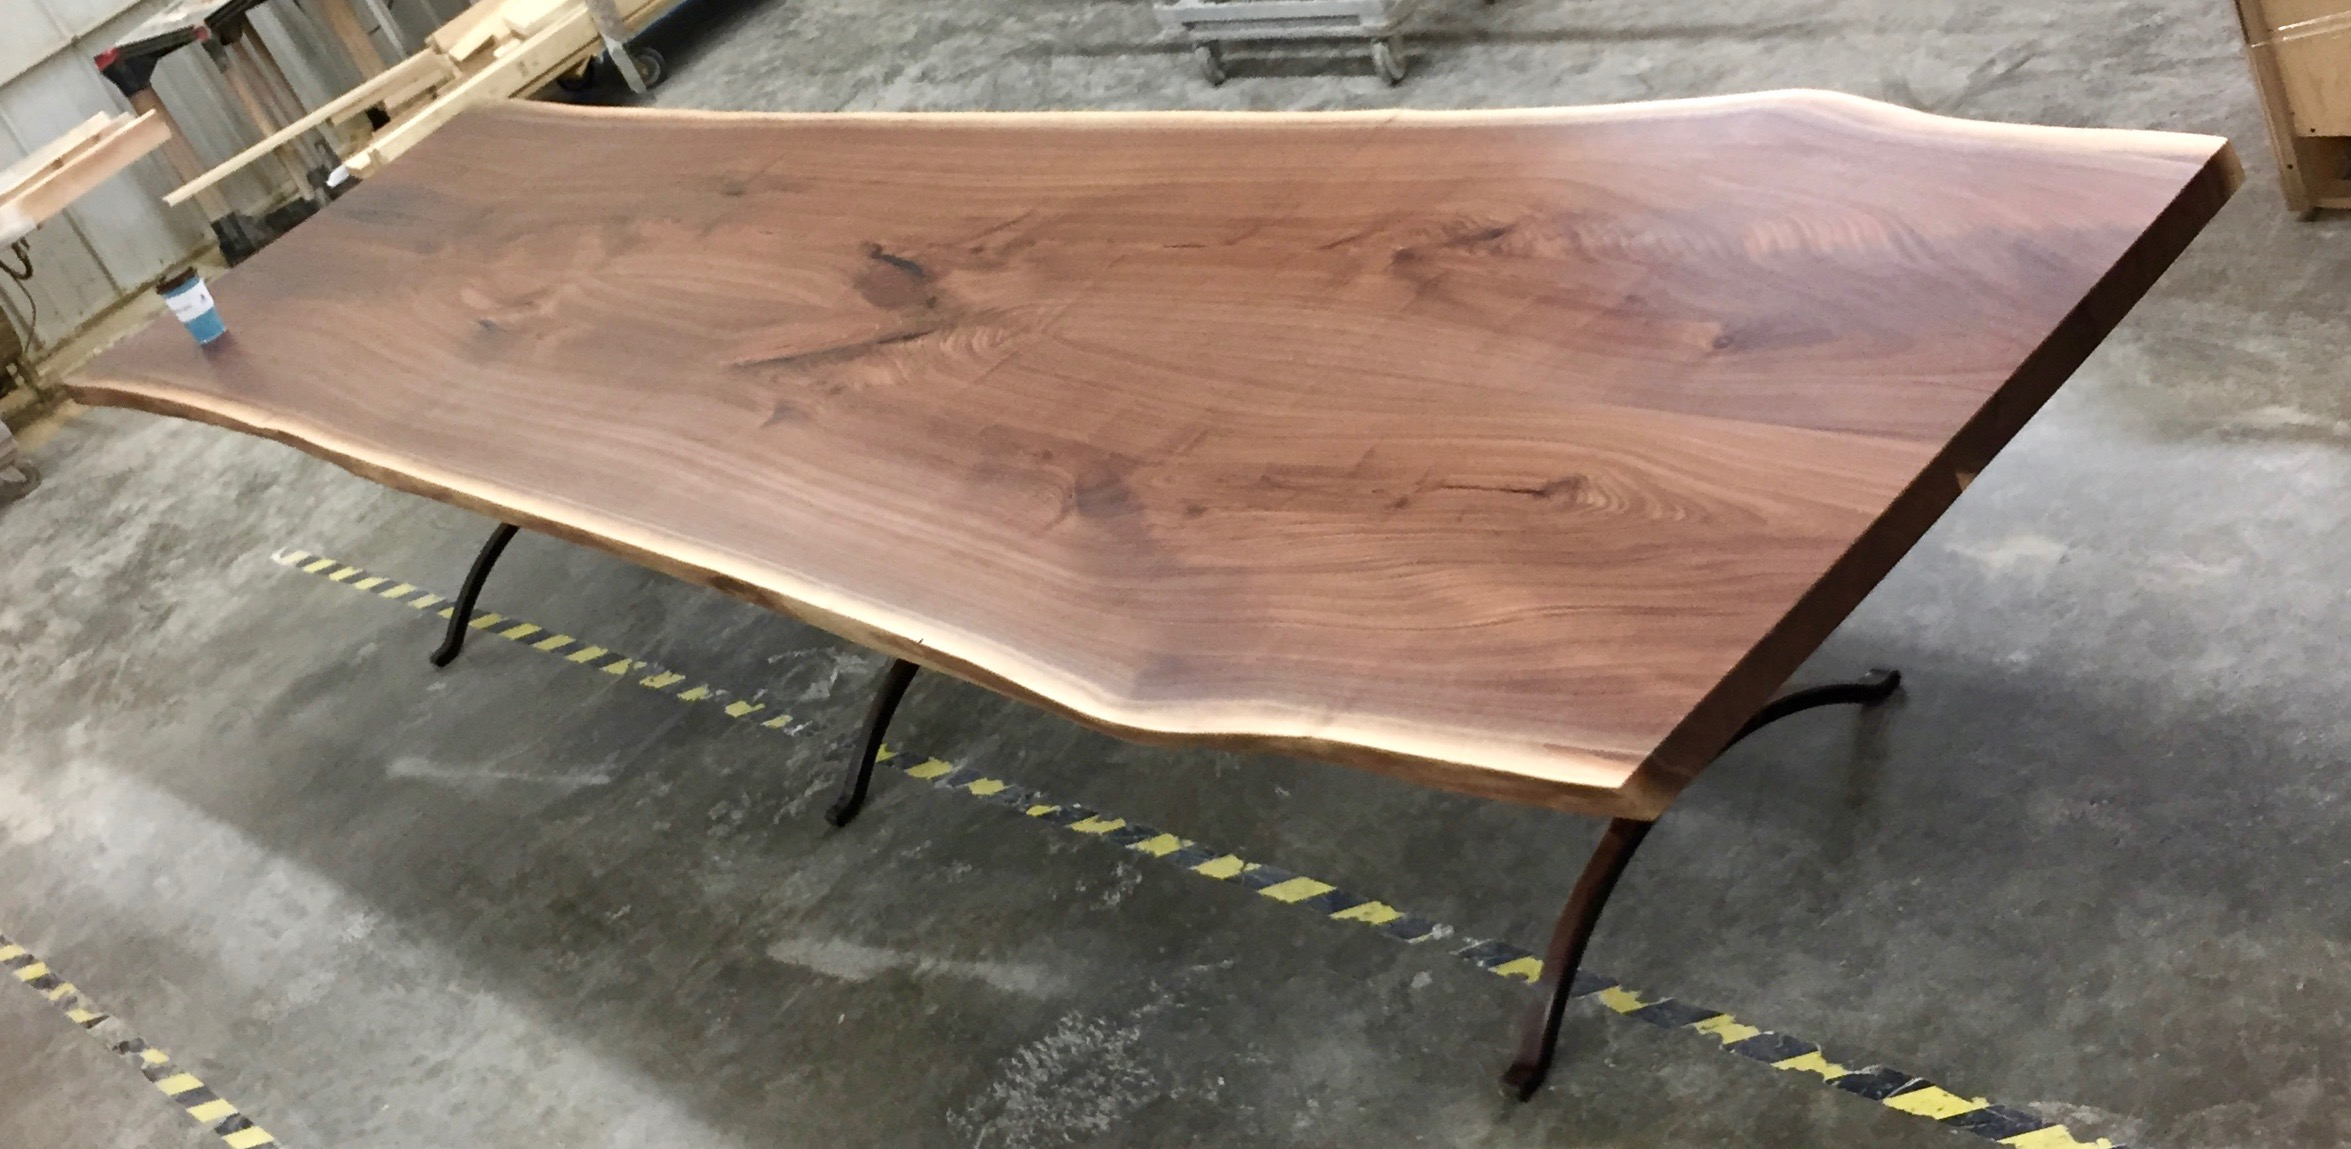 Fine Giant Black Walnut Live Edge Dining Table Bjorling Grant Download Free Architecture Designs Sospemadebymaigaardcom